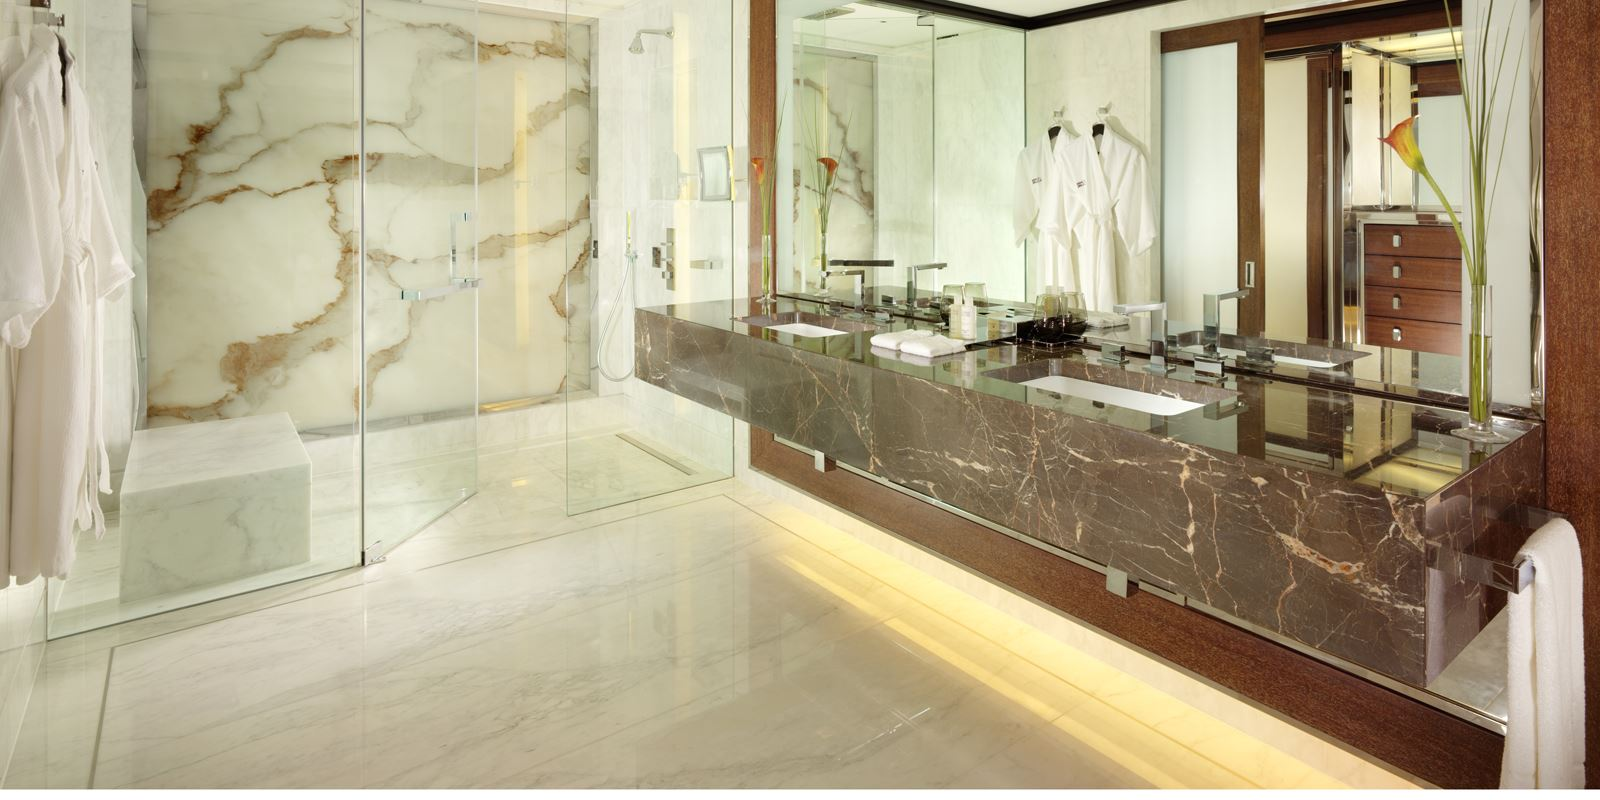 penthouse-luxury-master-bathroom-45-park-lane_2